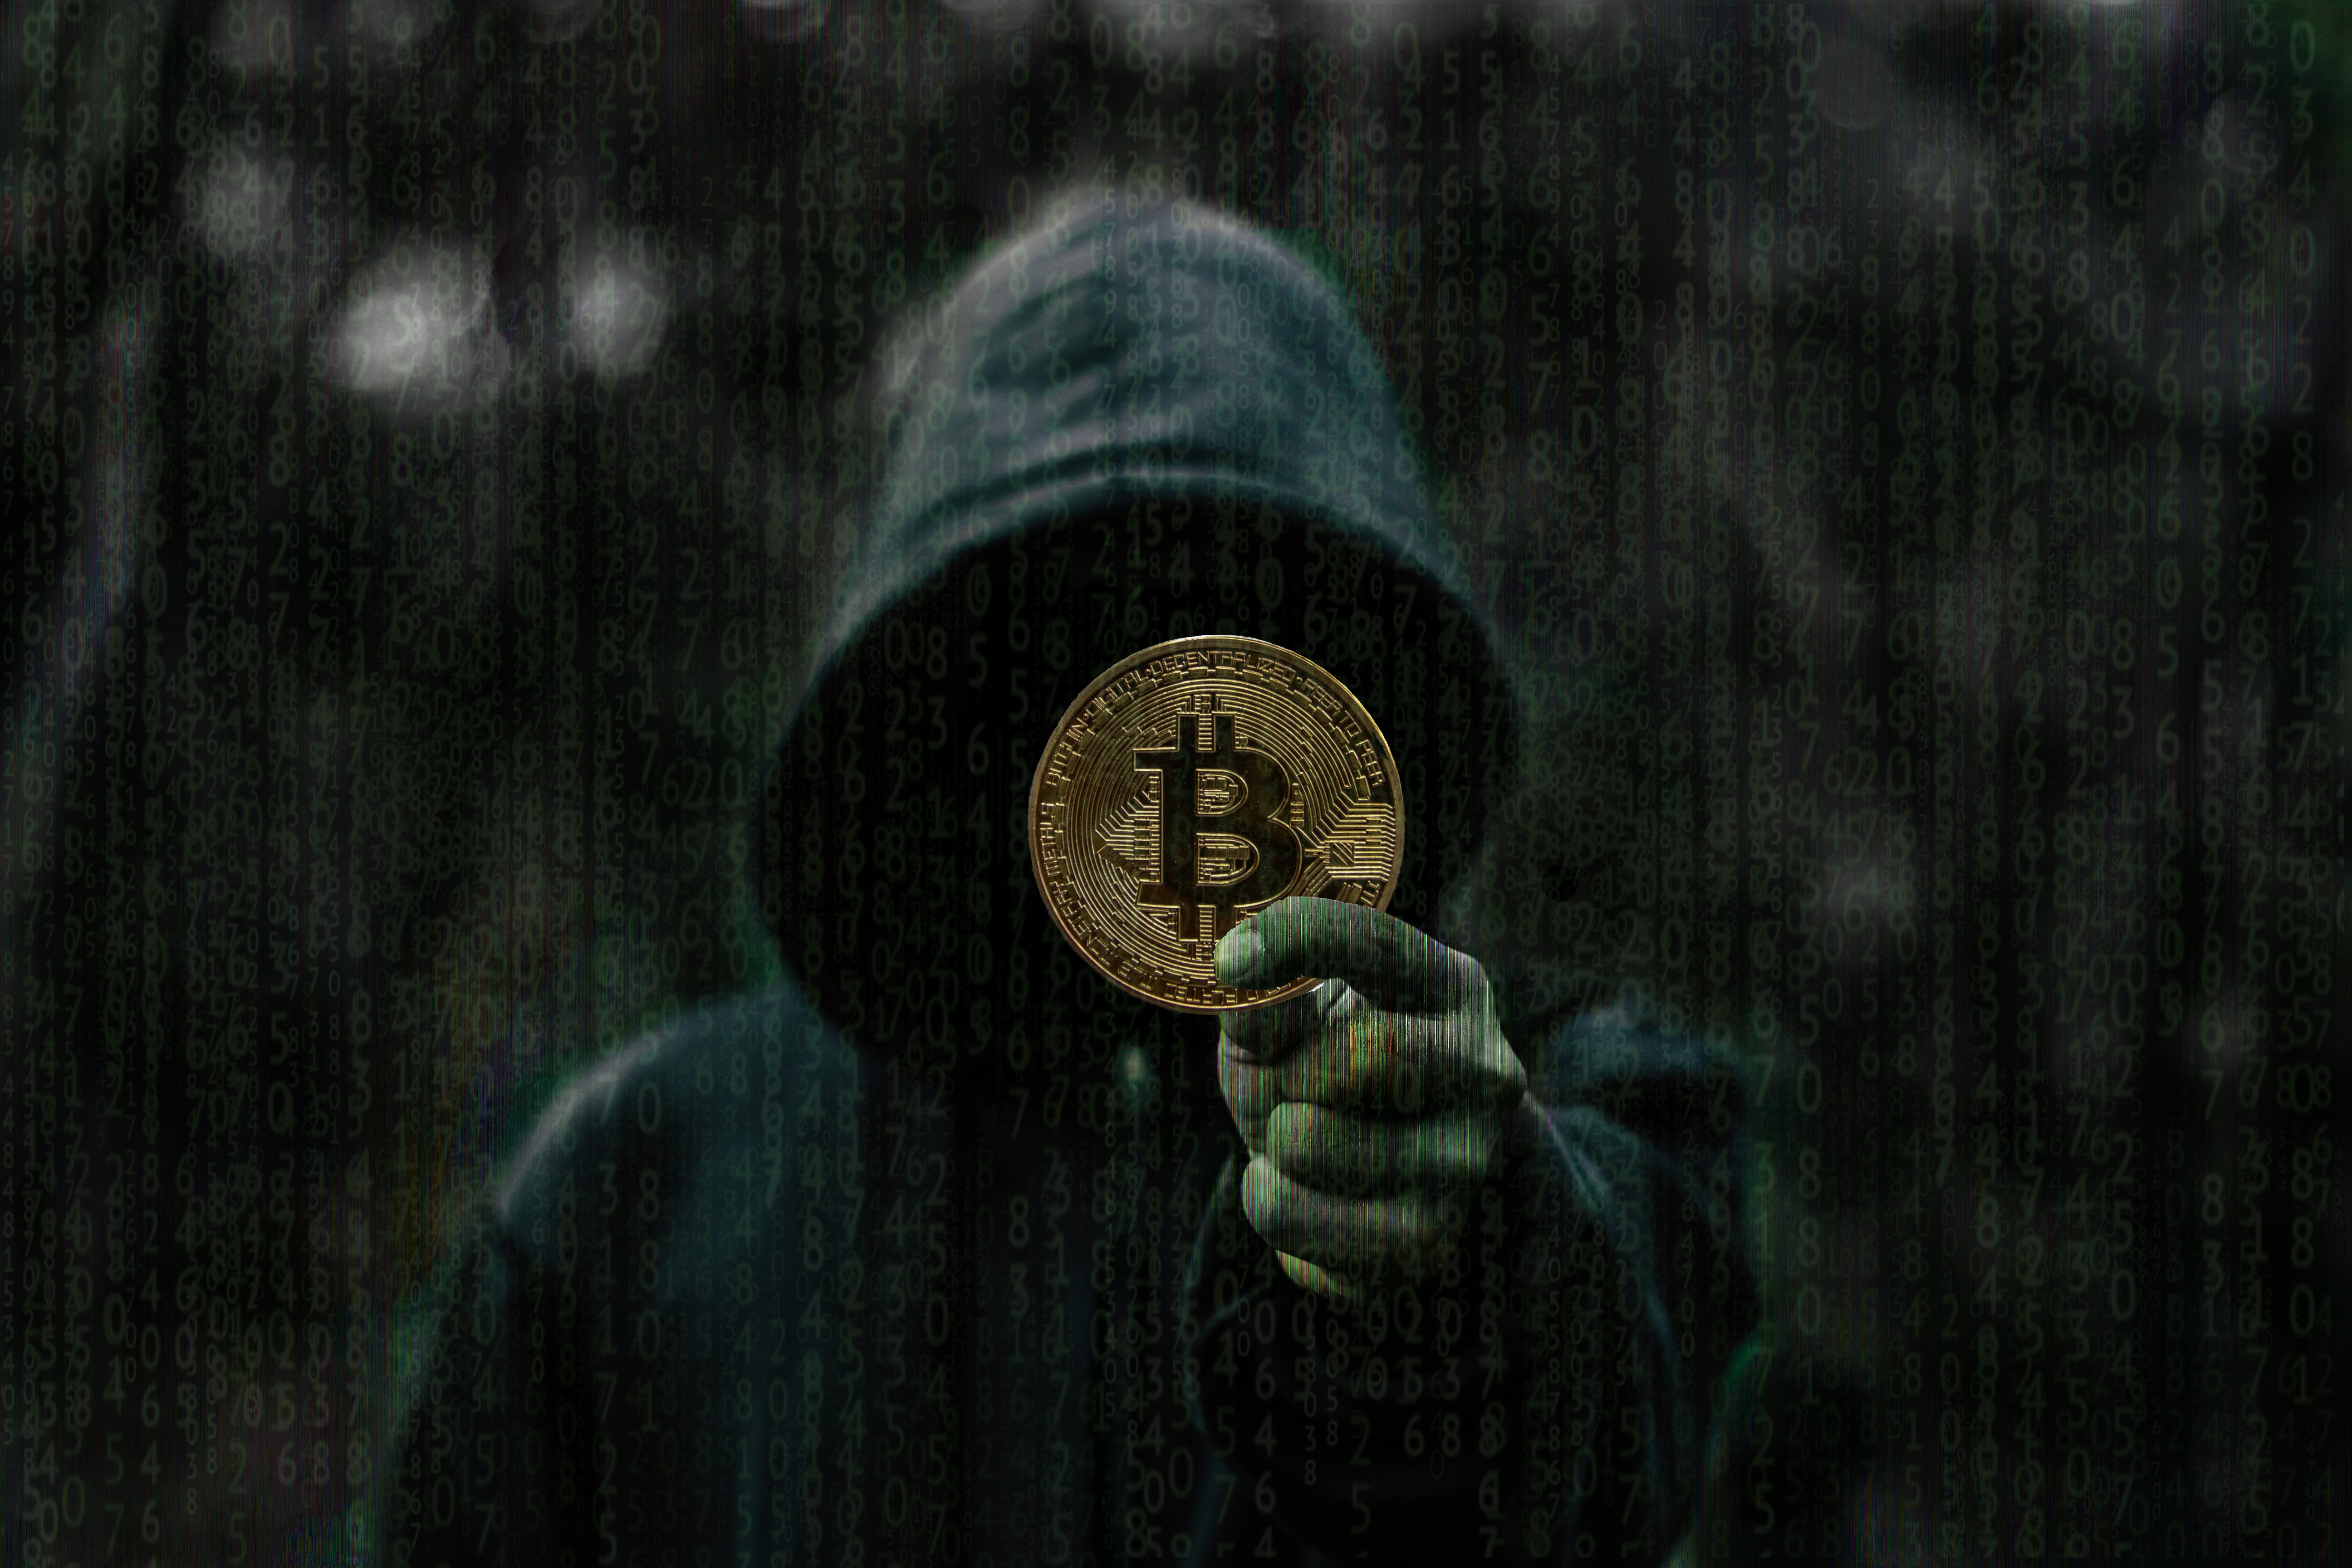 Hacker 3d Wallpaper Bitcoin Cryptocurrency 5k Hd Others 4k Wallpapers